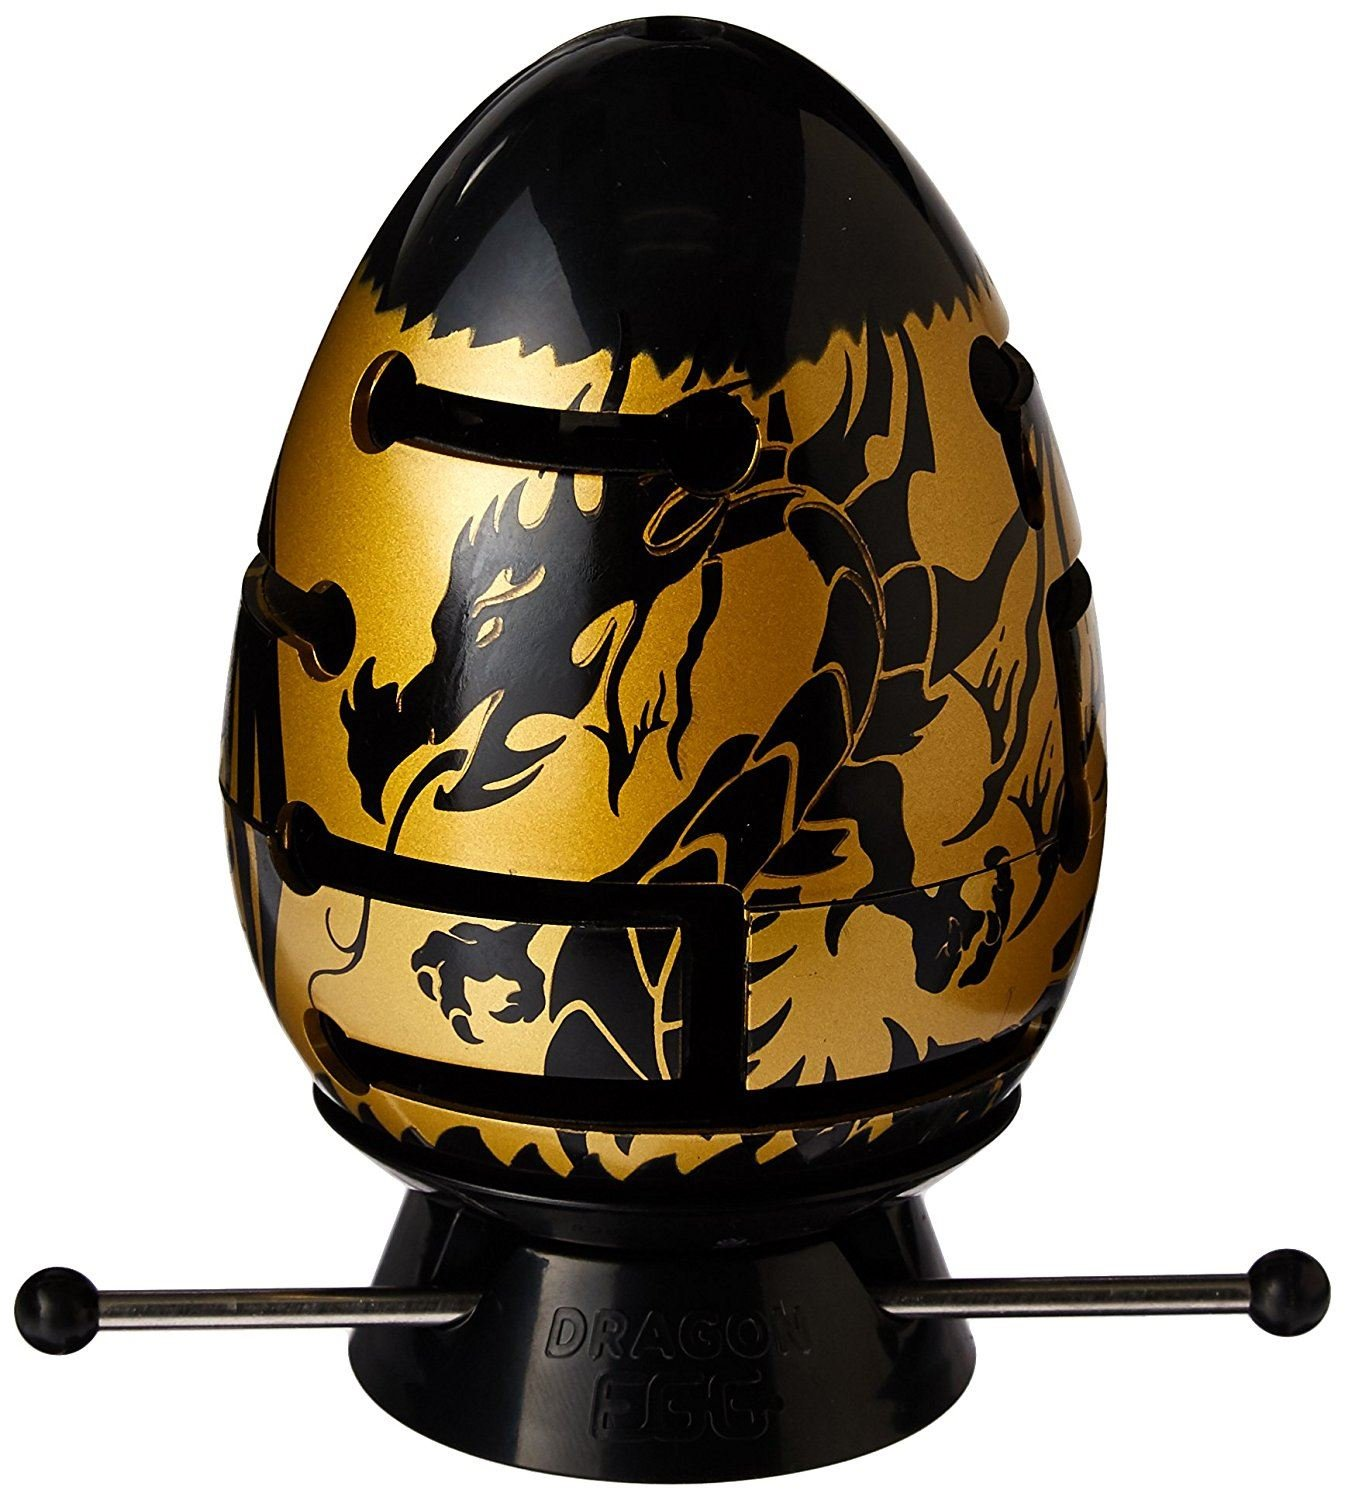 2-Layer Smart Egg Labyrinth Puzzle Level II 2-47 Black Dragon Smart Egg-dragon